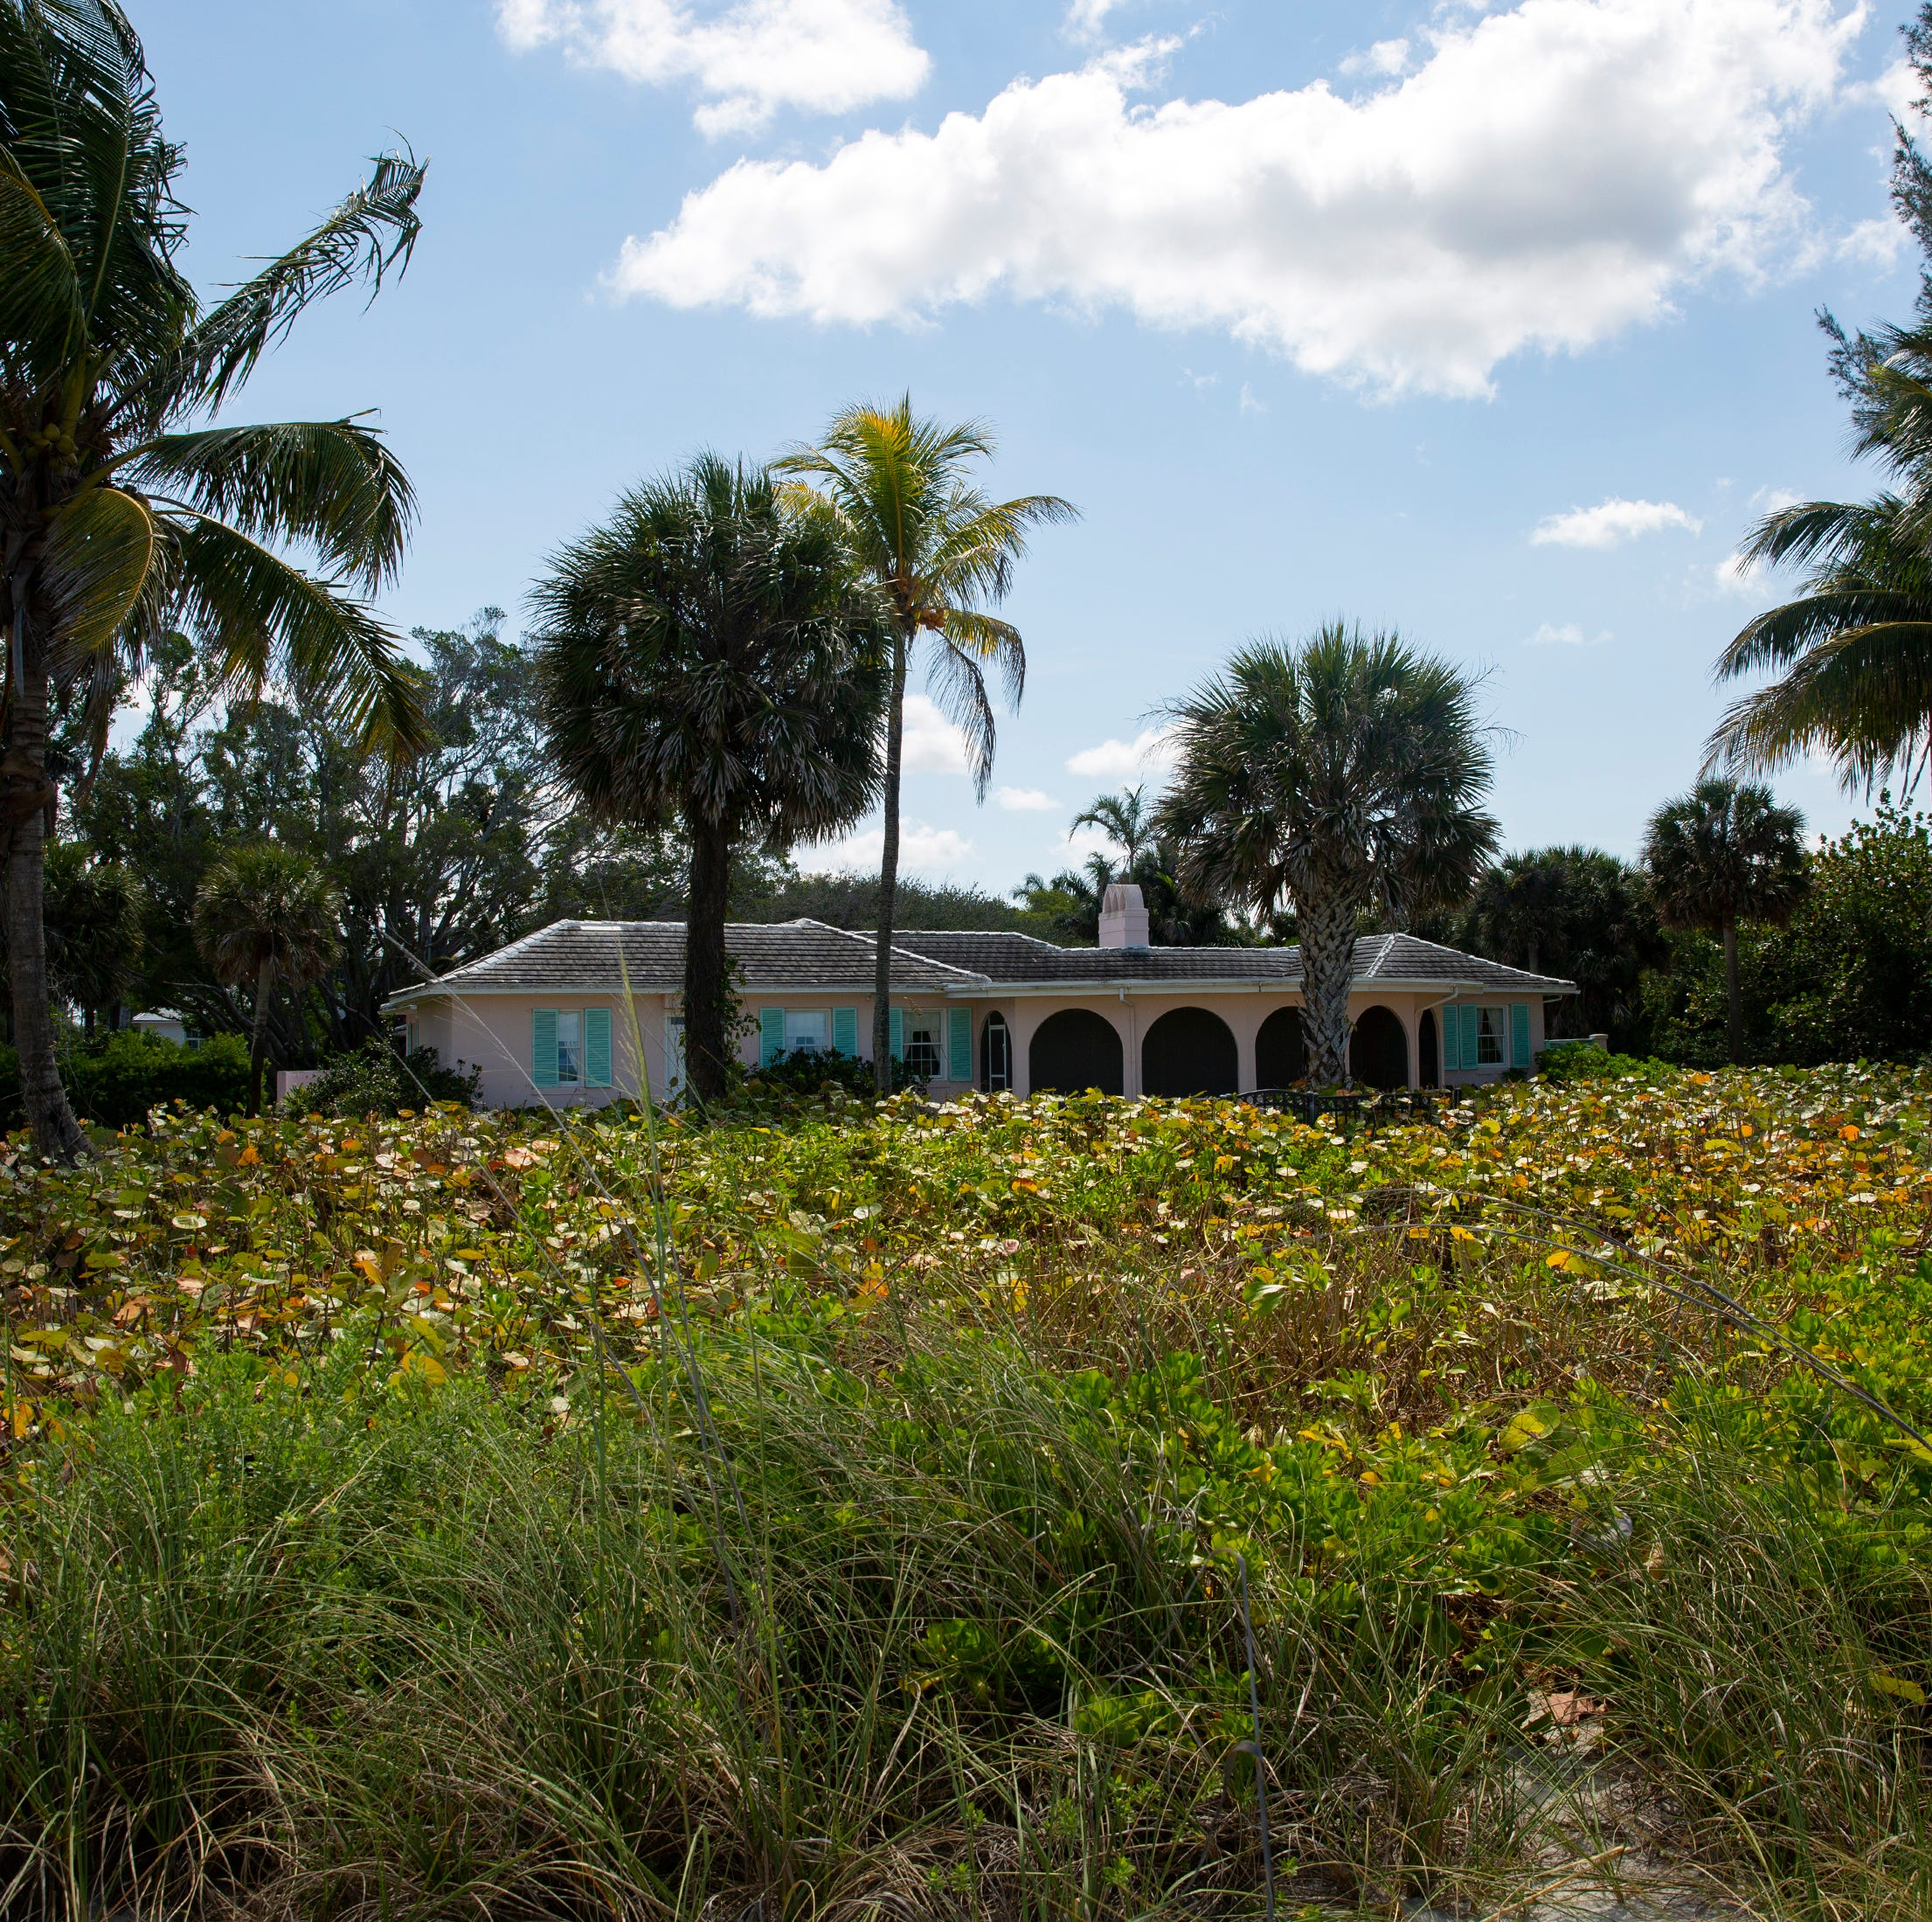 70-year-old quaint beach home in Old Naples sells for $25.5 million